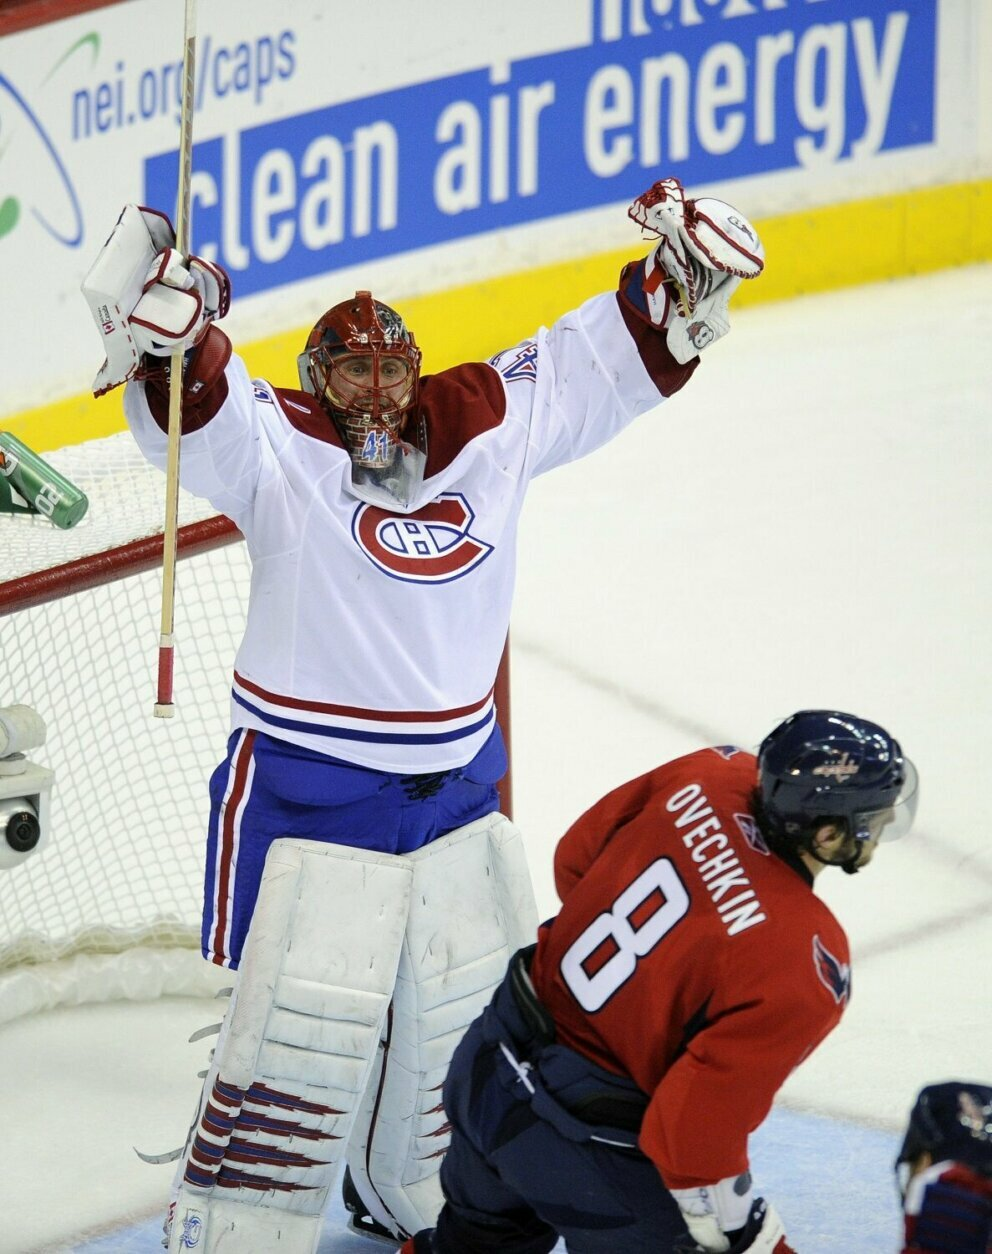 <p><strong>9. Caps collapse against Canadiens in 2010</strong></p> <p>The Washington Capitals have never had a better regular season than in 2009-10, collecting 121 points, the seventh-highest total in NHL history at the time. They had advanced to the conference semis the prior season and seemed to be building into a powerhouse as they entered their now-defunct 1-8 conference quarterfinal matchup with the Montreal Canadiens who, at 39-33-10, seemed to have little business in the postseason. After an overtime loss at home in Game 1, the Caps reeled off three straight wins, including 5-1 and 6-3 road victories in Montreal. Then, they outshot Montreal 134-64 over the final three games of the series, but managed just a single goal in each, losing all three. Later eliminations at the hands of the Penguins may have stung more, but this one cast the spell of playoff defeat that wouldn't be broken until 2018.</p>